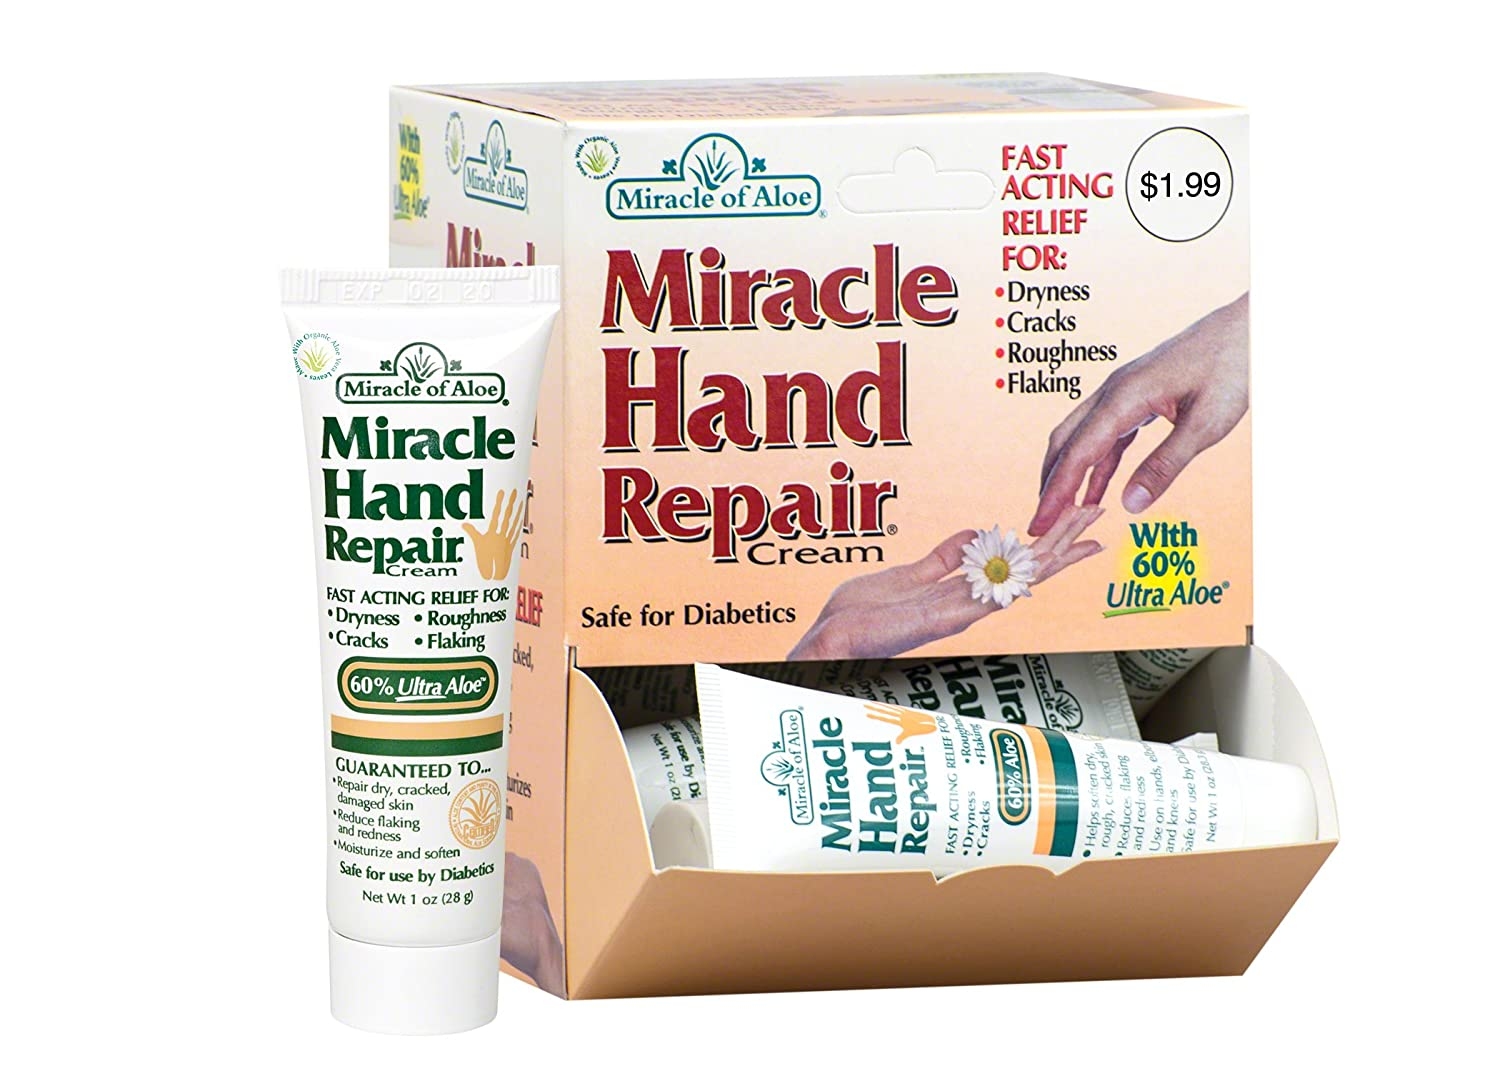 Miracle of Aloe, Miracle Hand Repair Cream with 60% UltraAloe 1 ounce tube - 12 piece display 22391